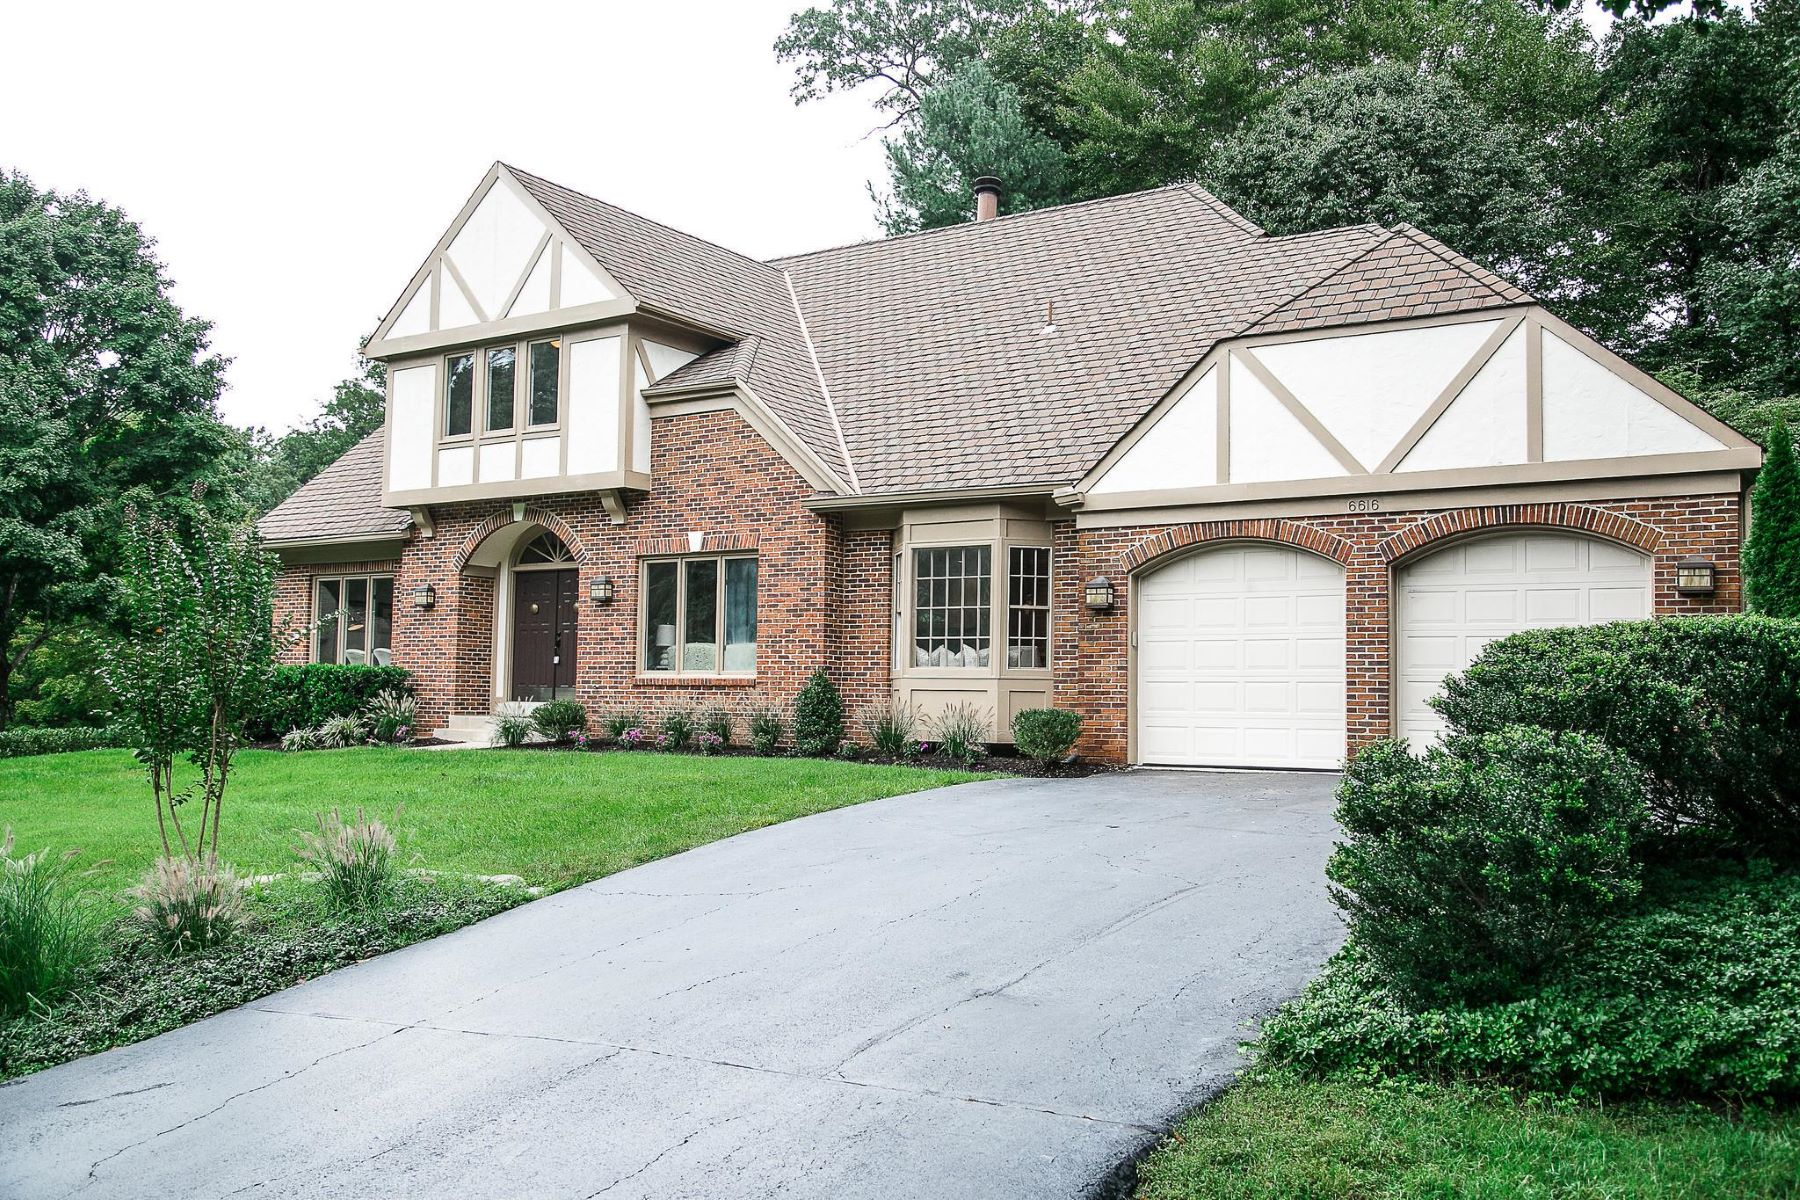 Additional photo for property listing at 6616 Jill Ct 6616 Jill Ct McLean, Virginia 22101 United States